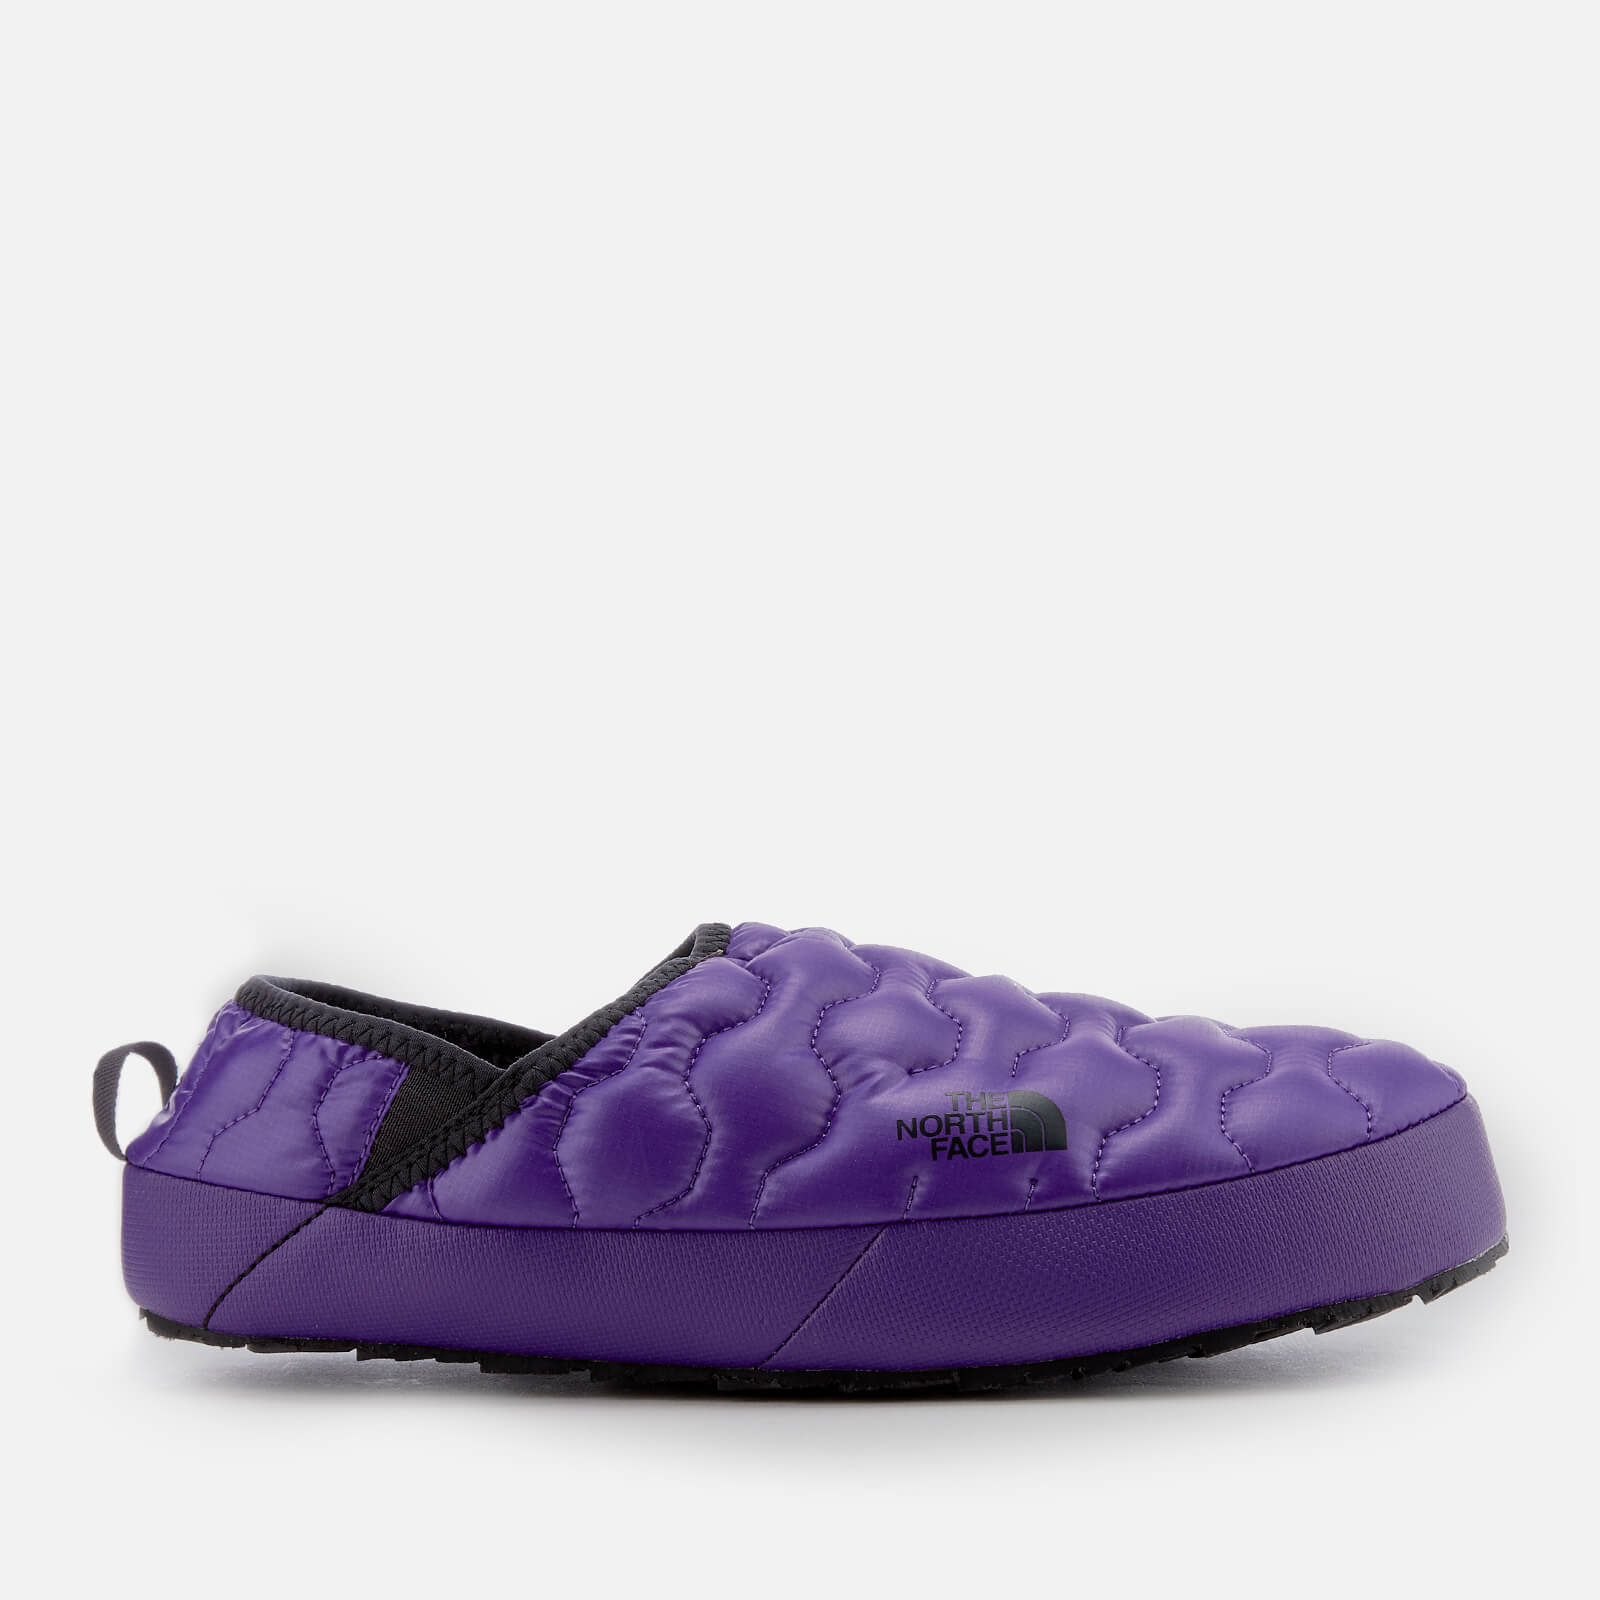 1e8803ba9 The North Face Men's Thermoball Traction Mule IV Slippers - Shiny  Tillandsia Purple/Phantom Grey